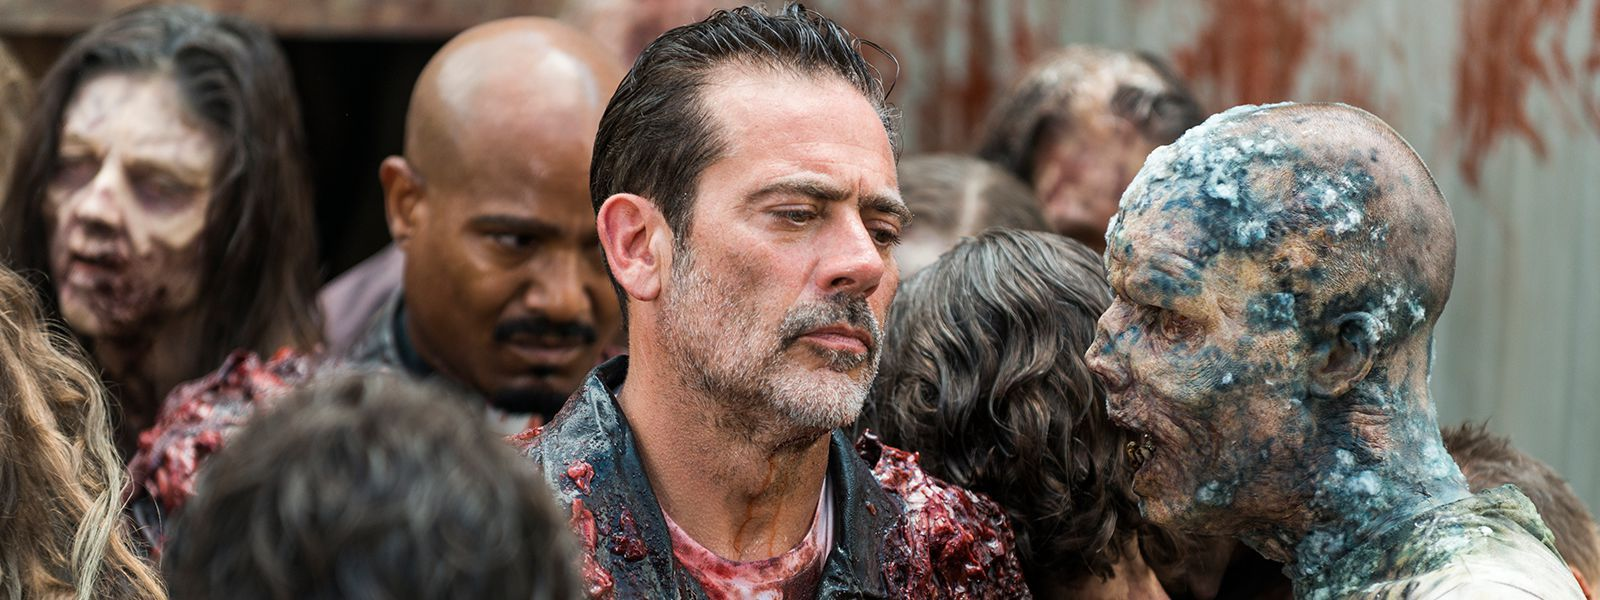 the-walking-dead-episode-805-gabriel-gilliam-negan-morgan-post-800×600